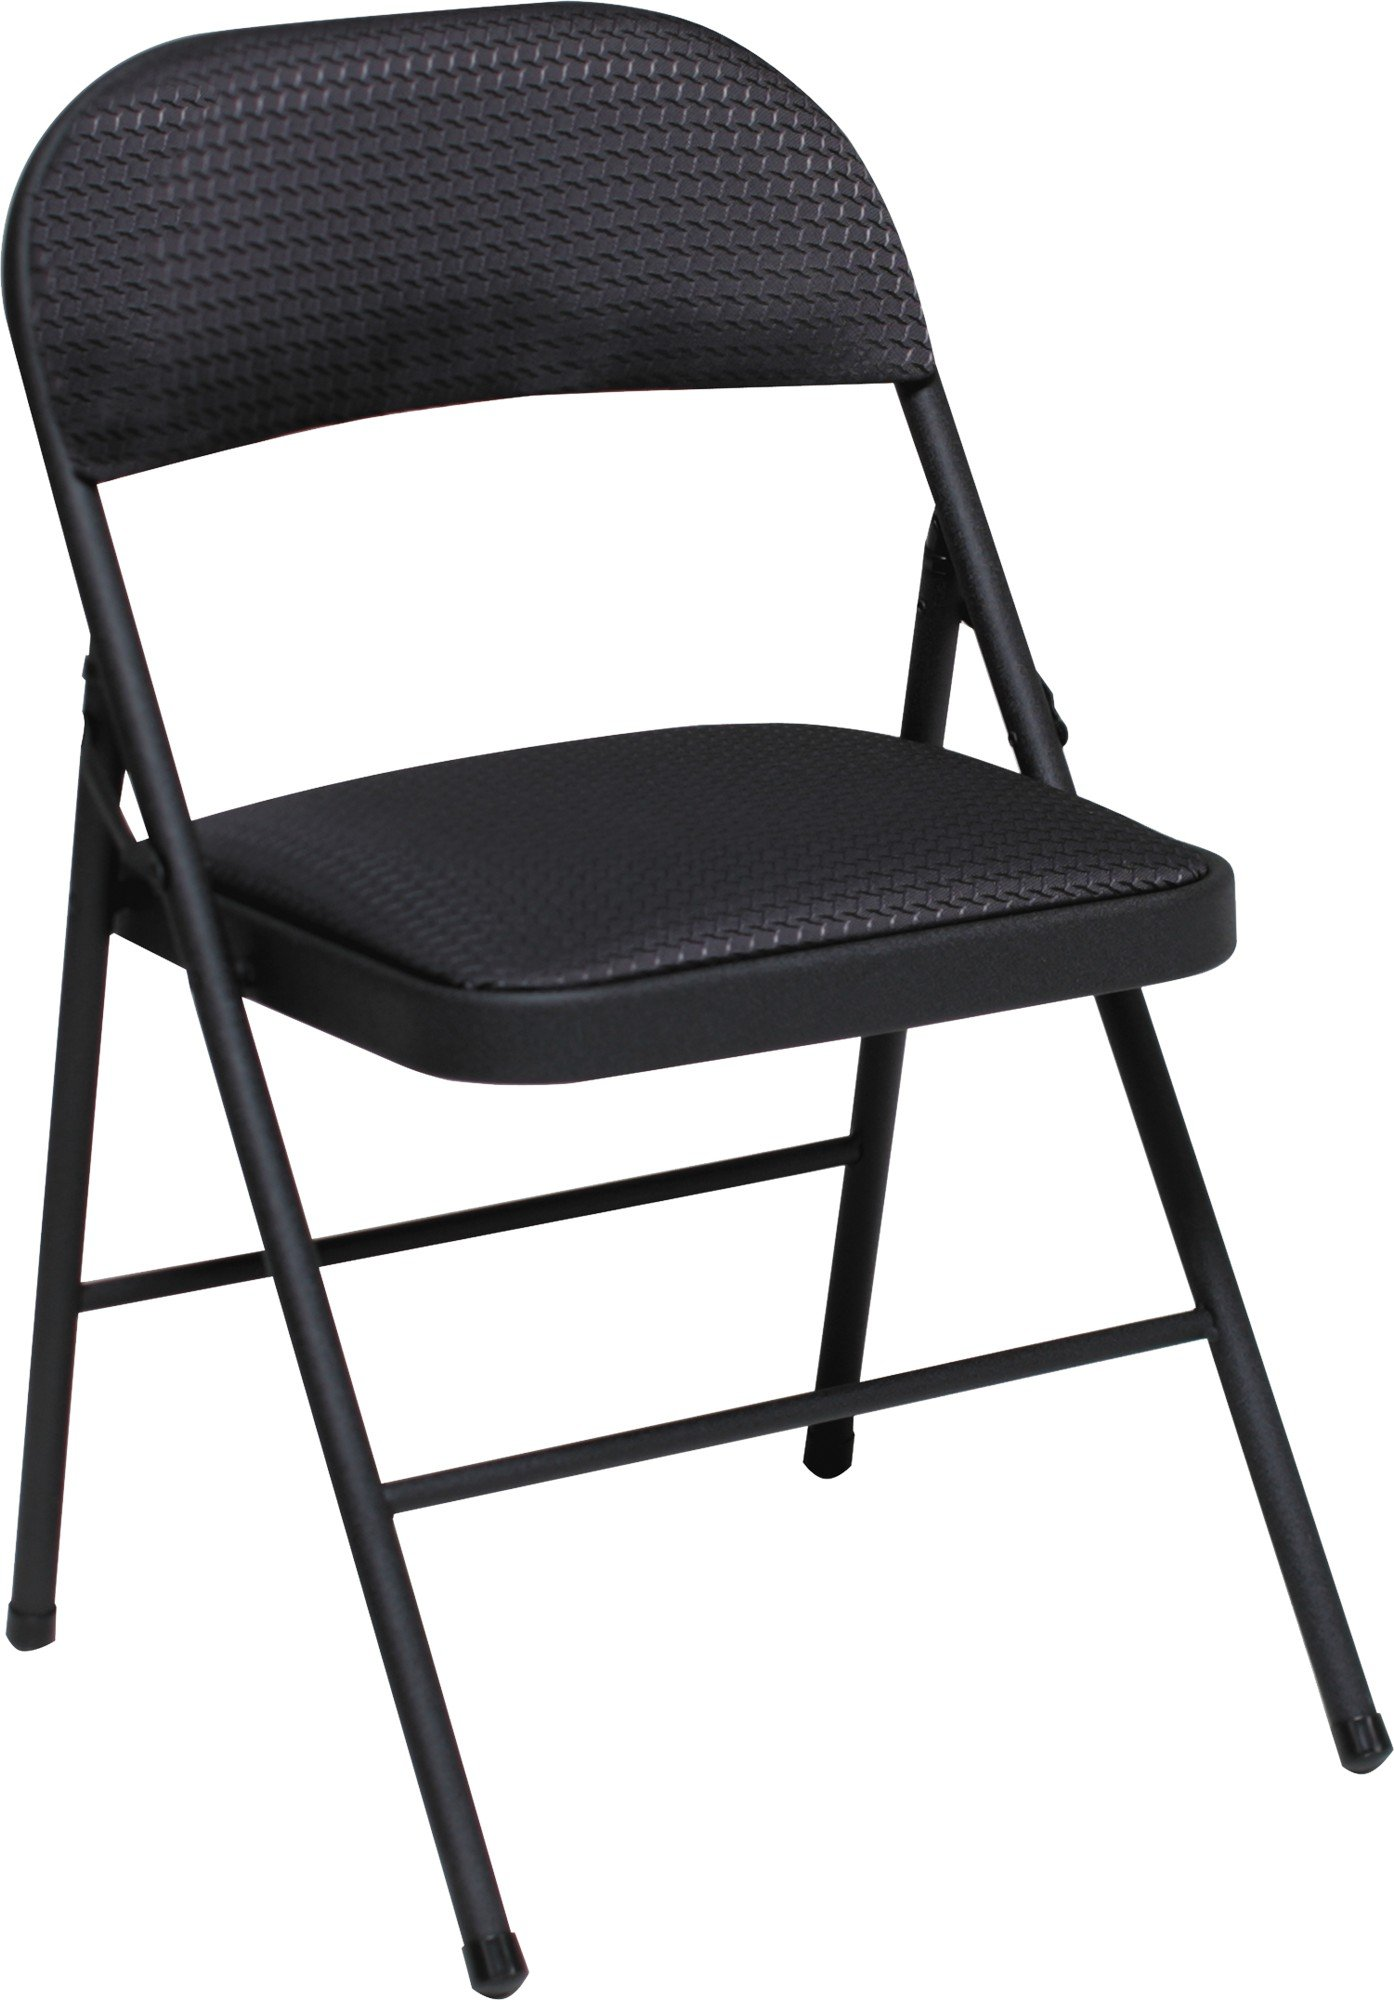 Cosco Fabric Folding Chair Black (4-pack) by Cosco